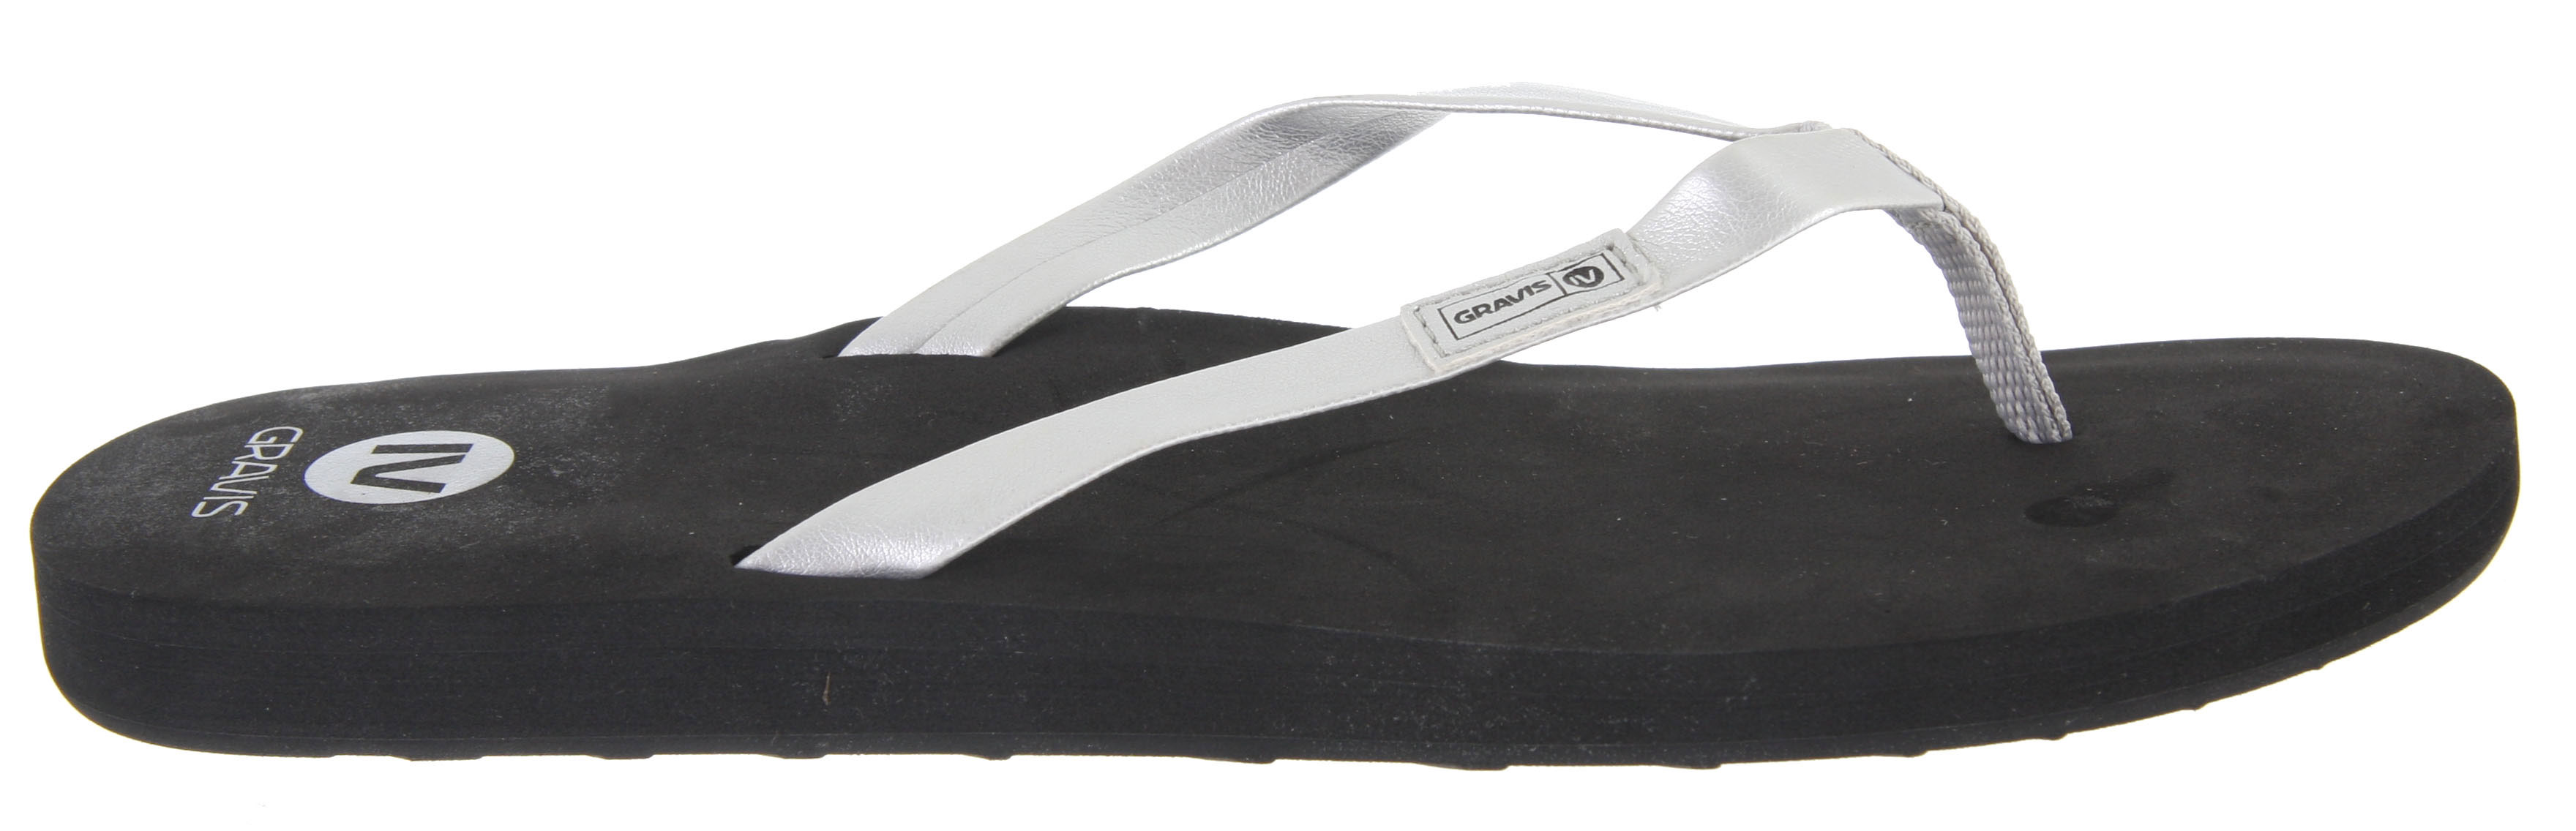 Surf The Gravis Spritzer Sandals offers such a fresh look, it's perfect for summer. Featuring a light T-strap design, its dainty appearance adds a nice feminine touch. The arch support provides great comfort, perfect to wear around town. Hit the beach with the Gravis Spritzer Sandals this summer and enjoy the sun. You'll look like you're ready for summer.Key Features of the Gravis Spritzer Sandals: Thin Webbing Arch Support EVA Topdeck - $11.95